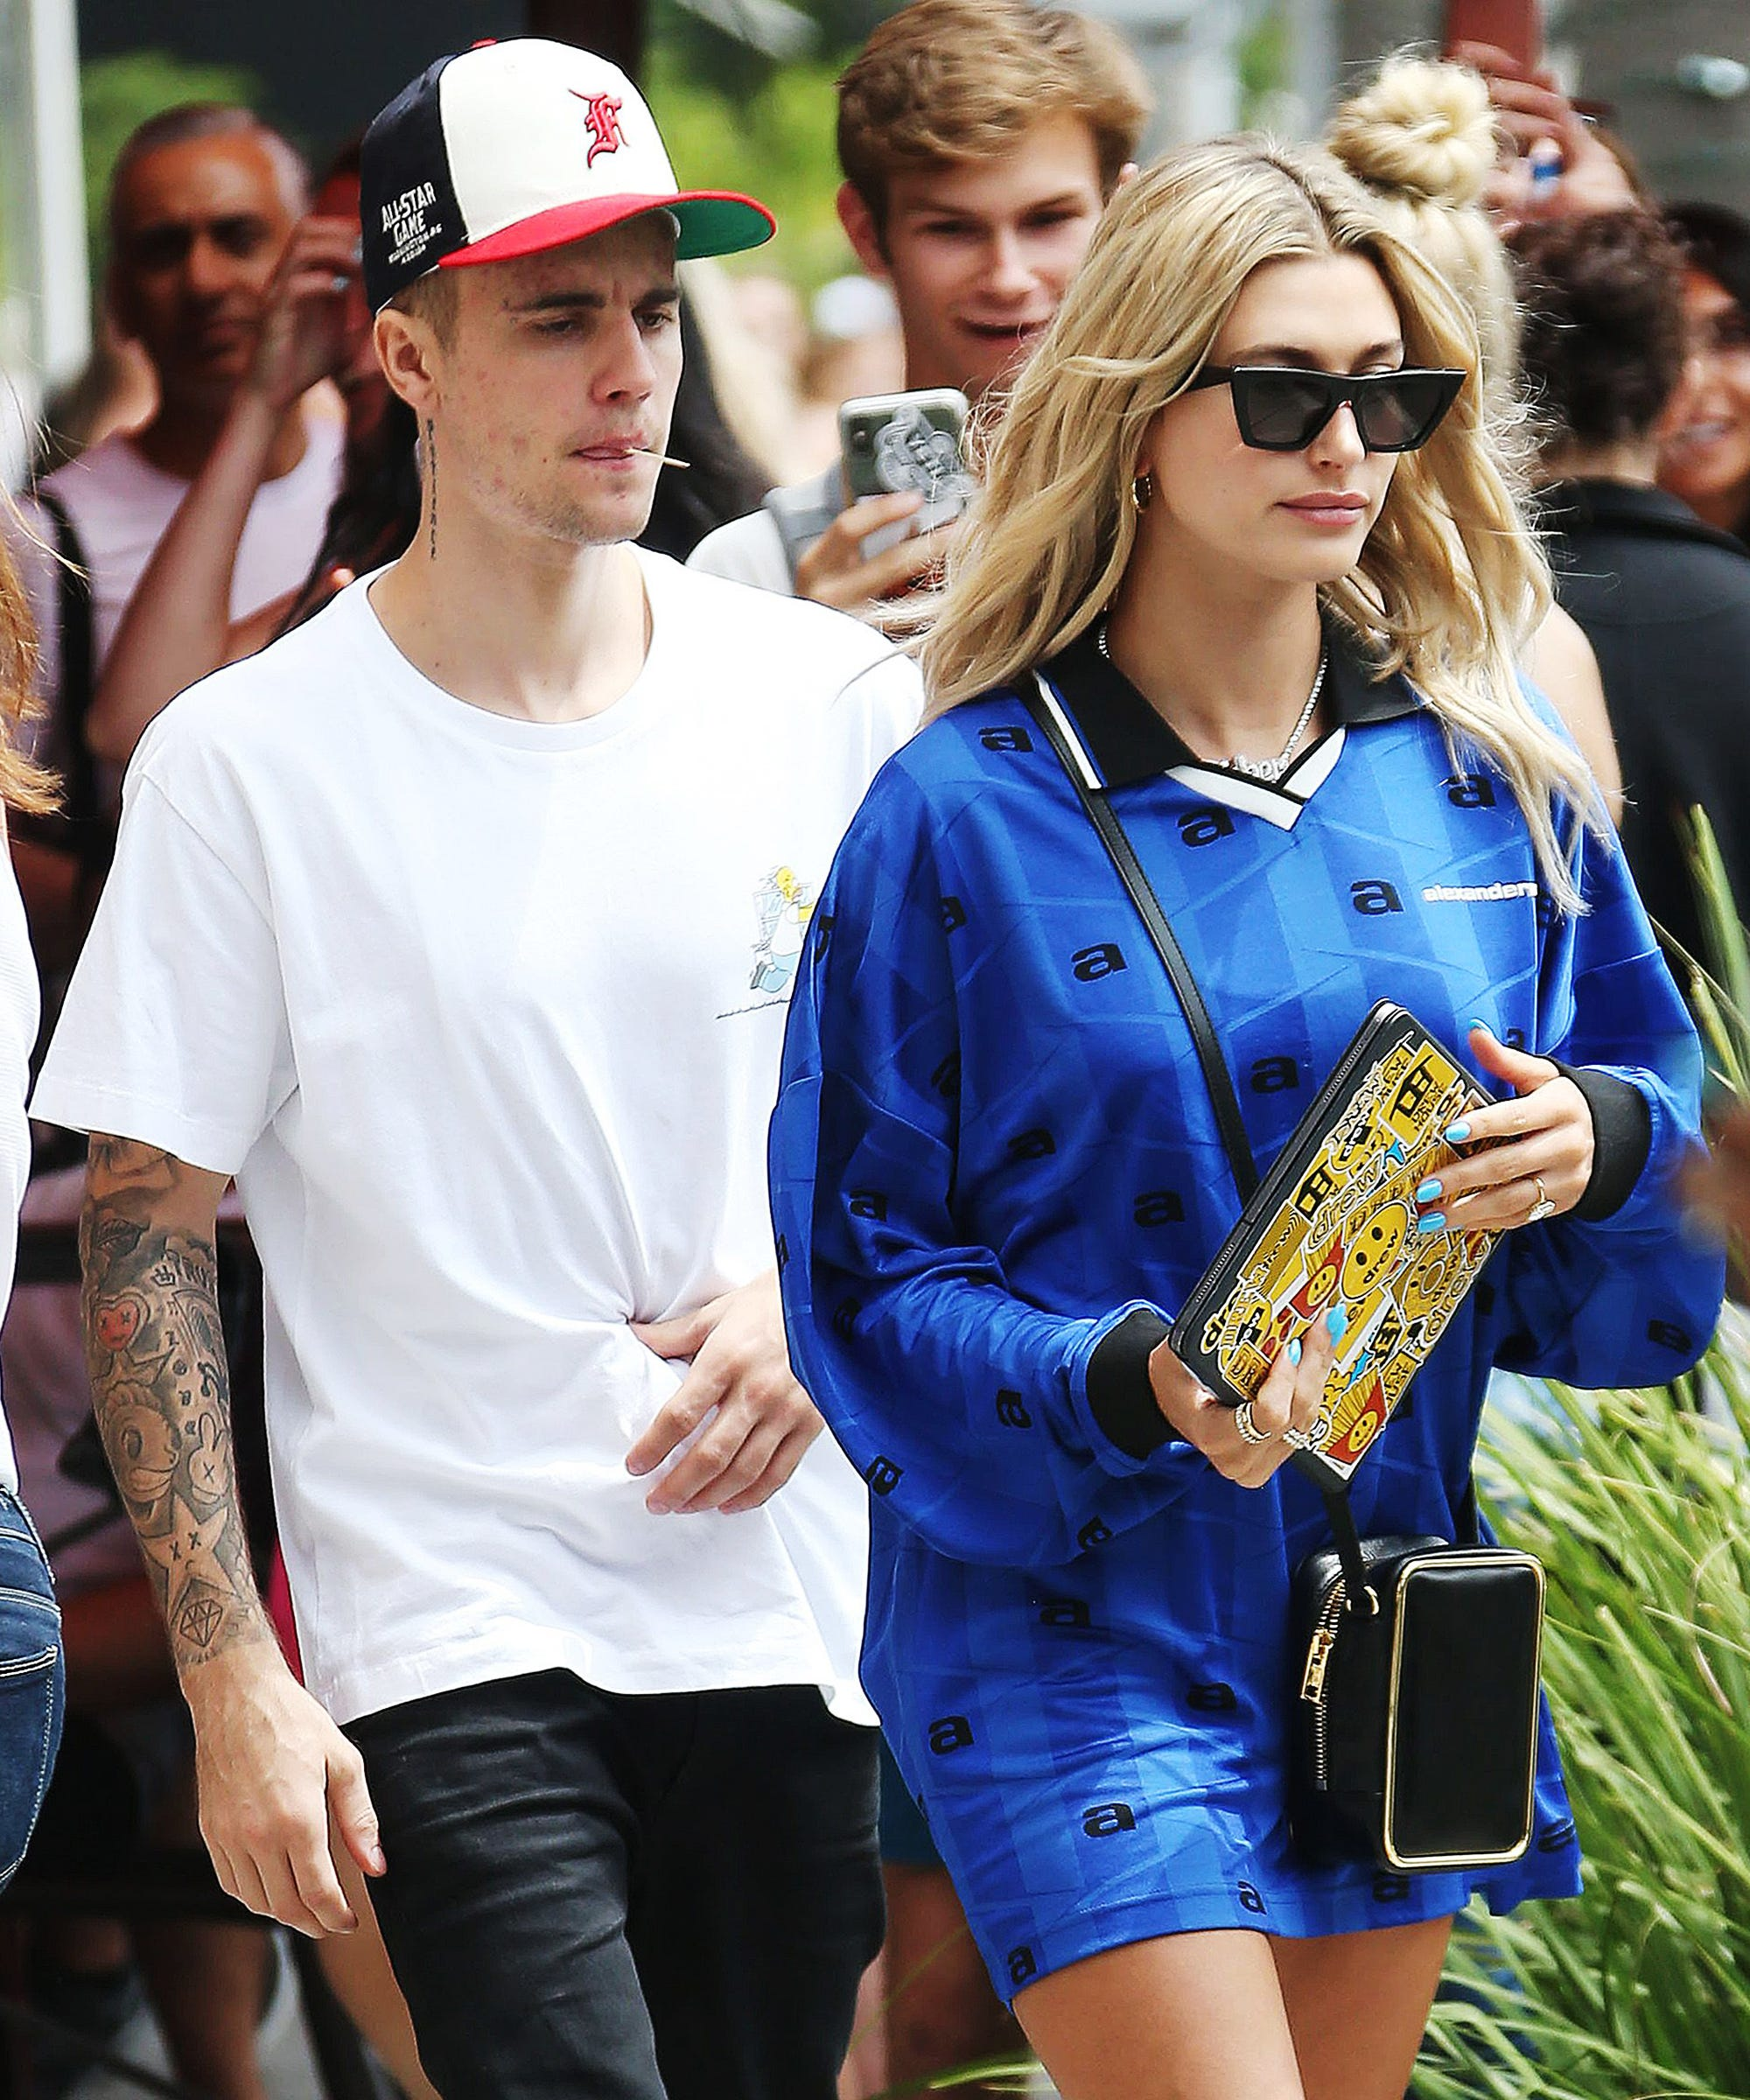 Justin Bieber & Hailey Baldwin's Wedding Is In A Surprising Location